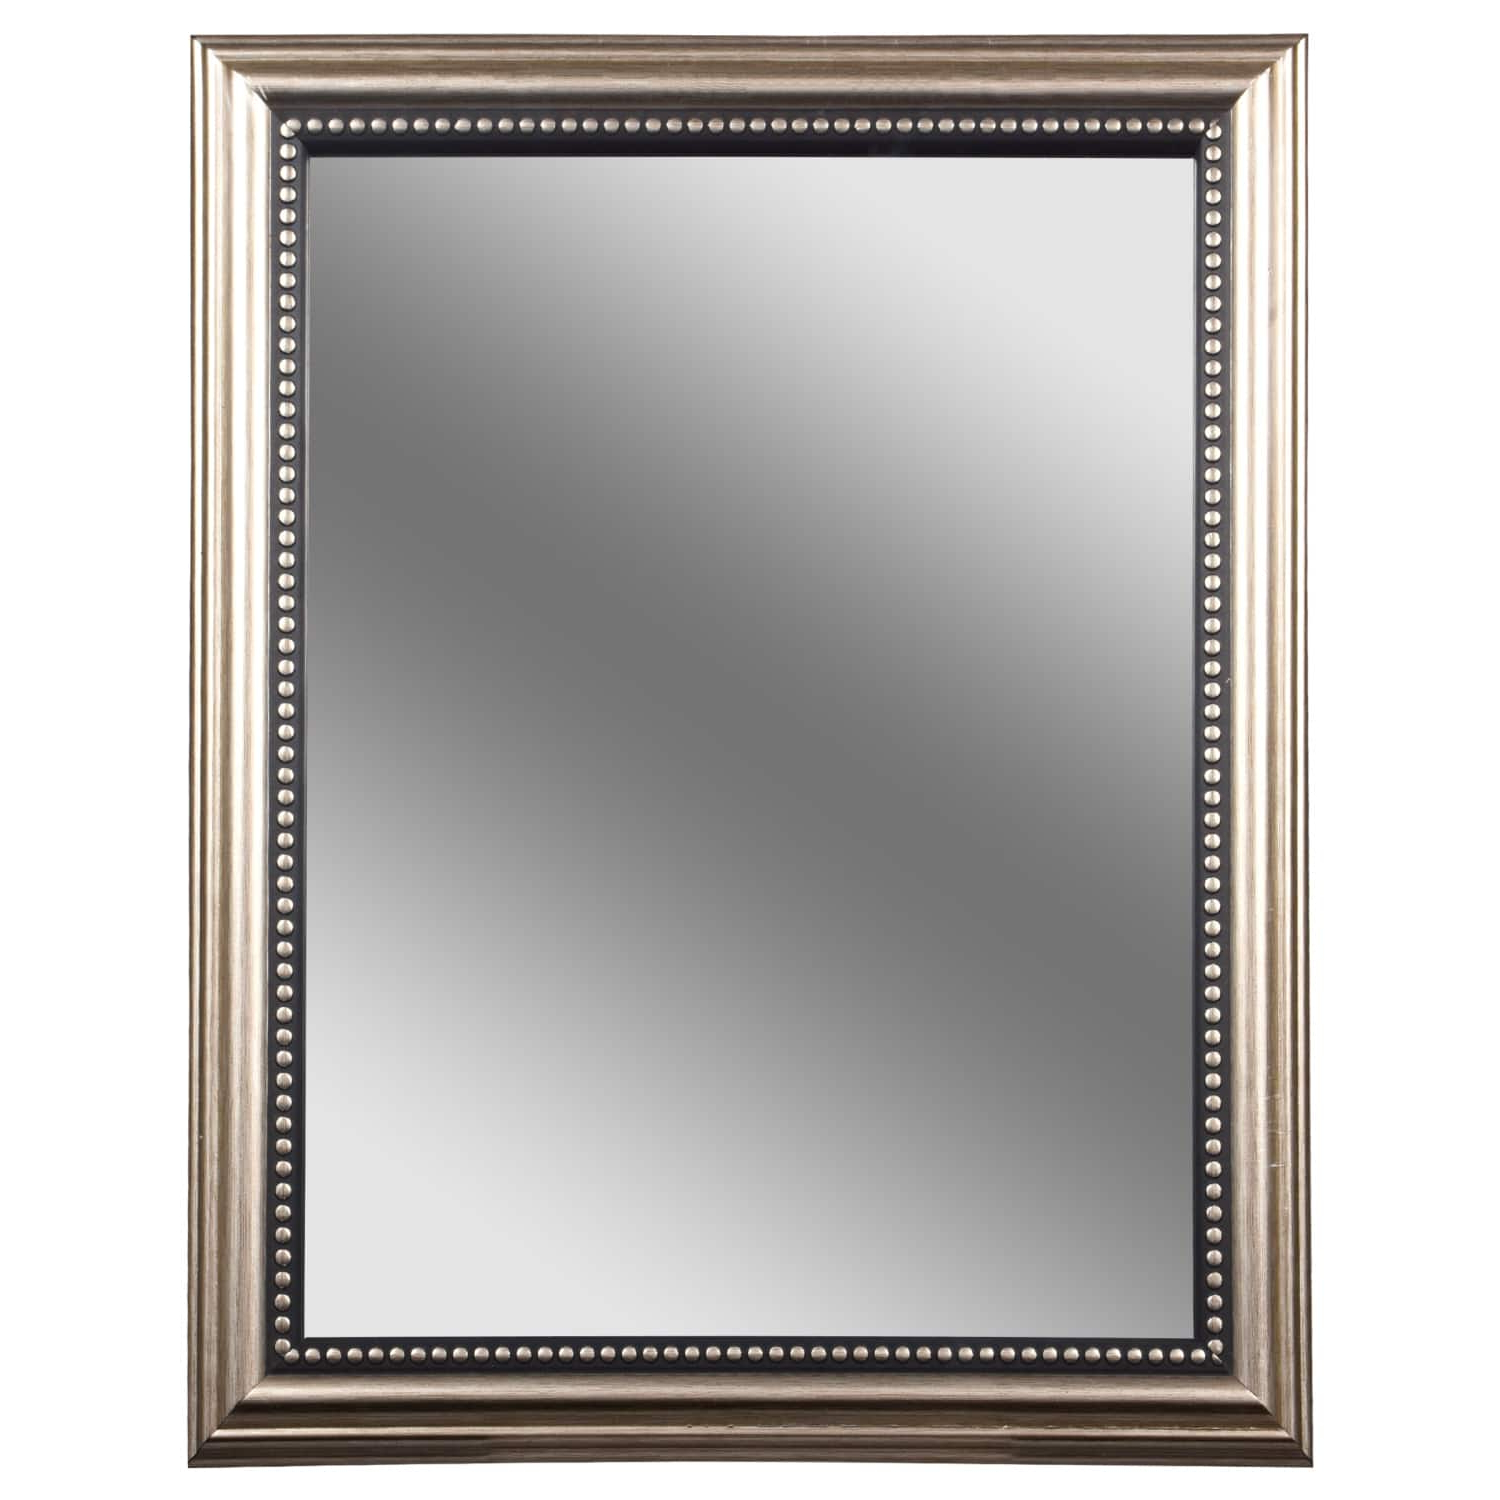 Bulk Accent Mirrors With Silver Plastic Frames For Well Known Accent Mirrors (View 11 of 20)